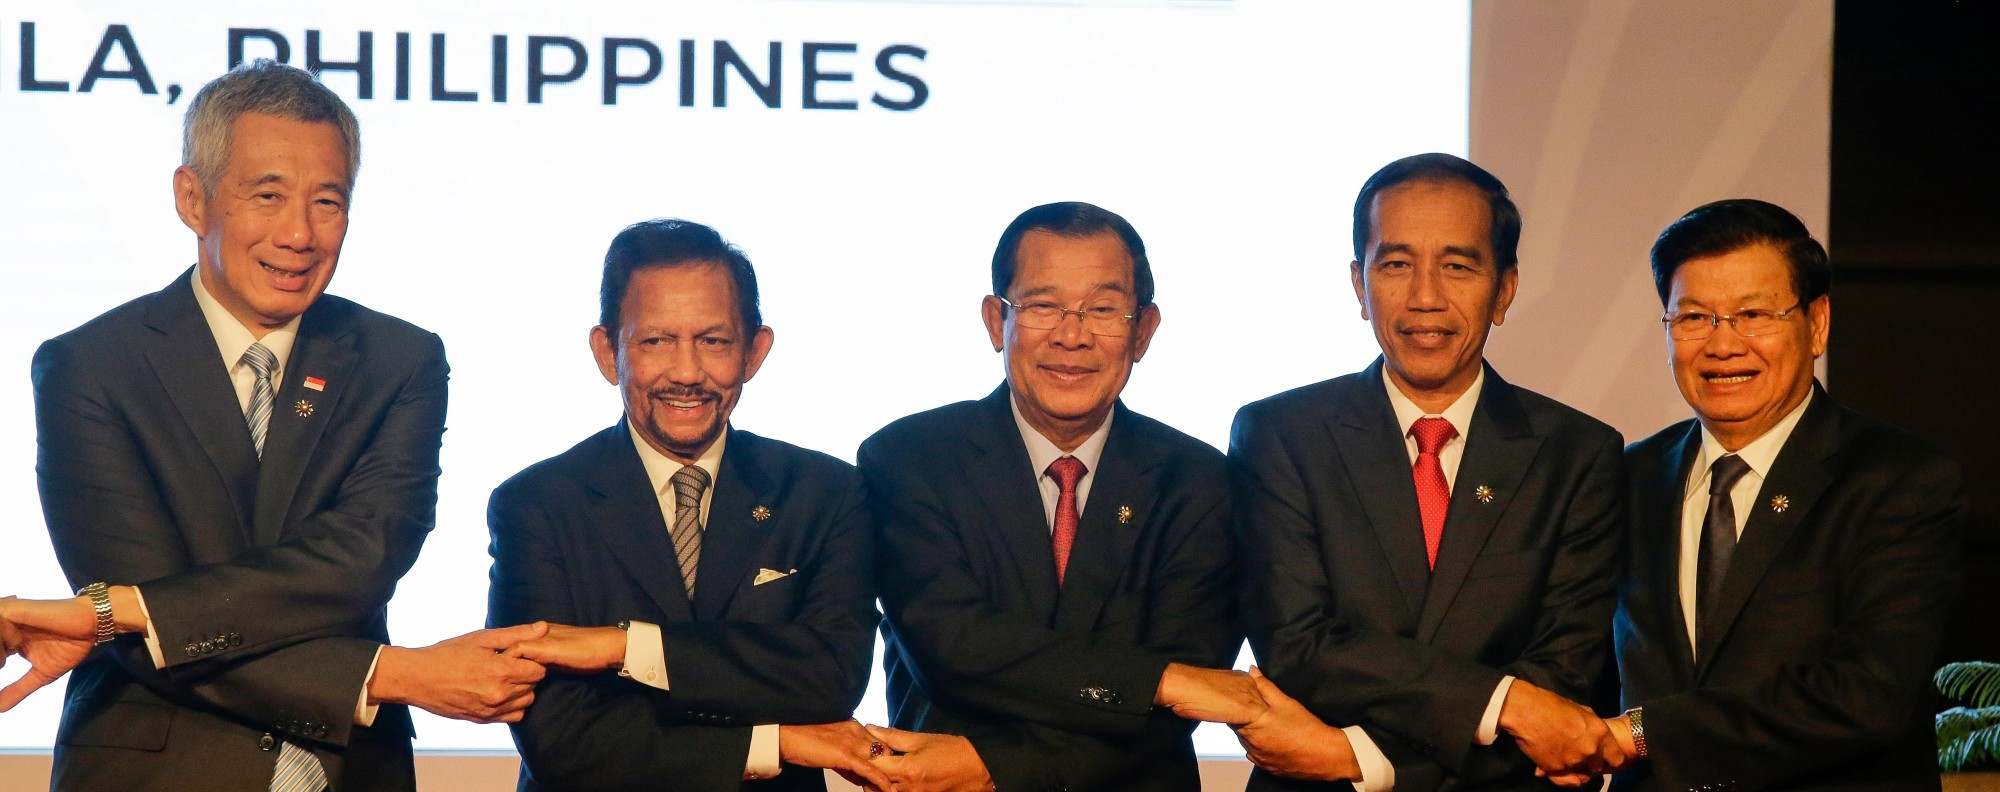 Leaders join hands at the Asean Summit in Manila, Philippines. Photo: EPA